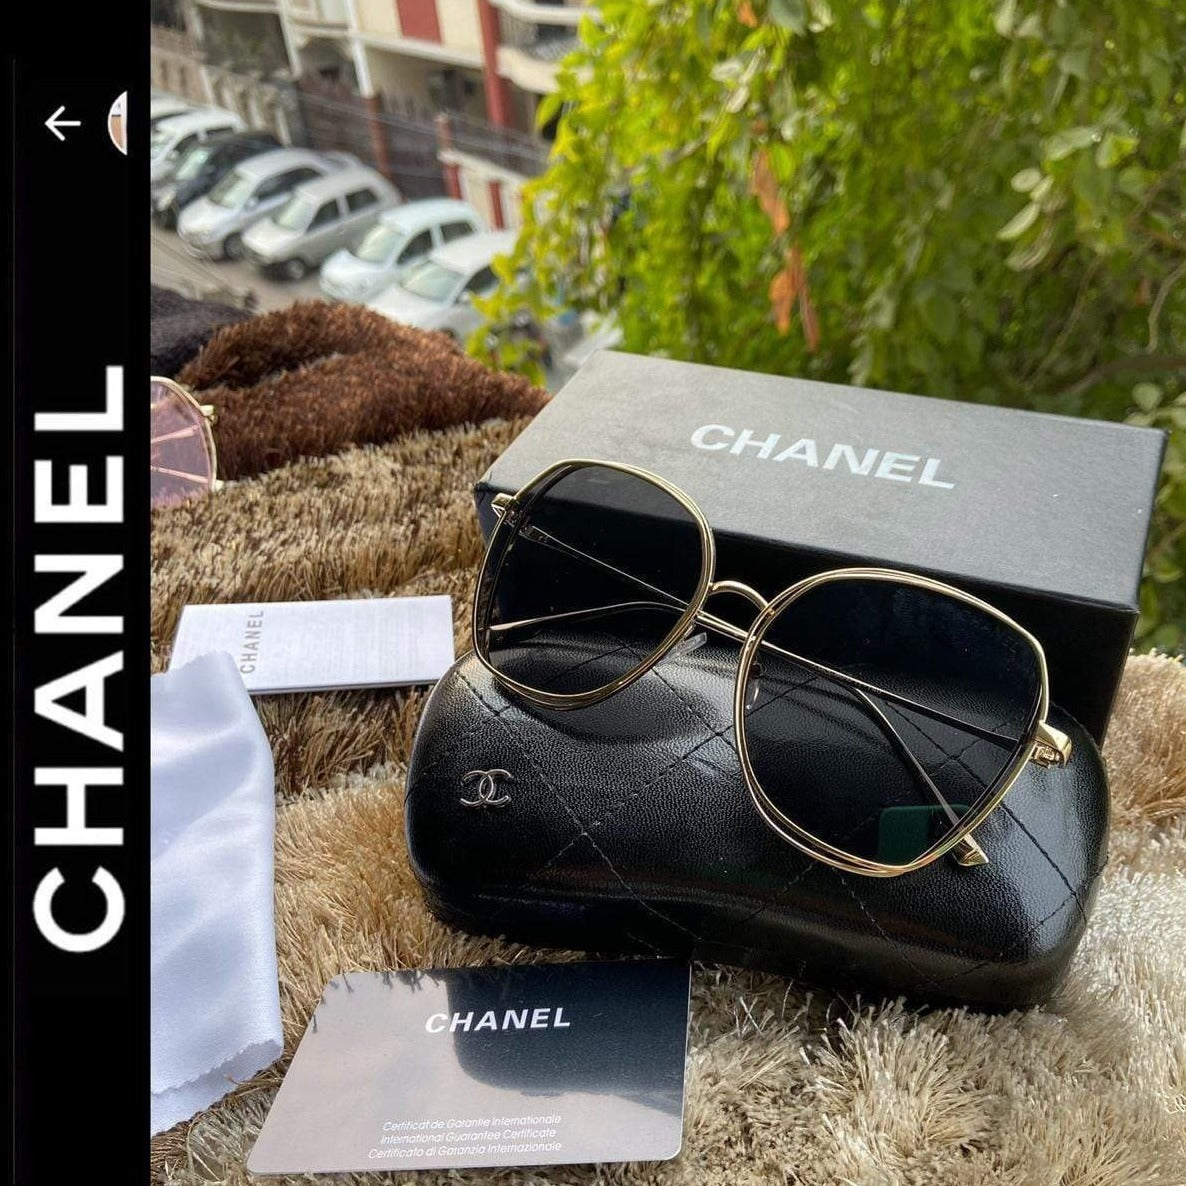 Chanel Sunglass for Her First Copy